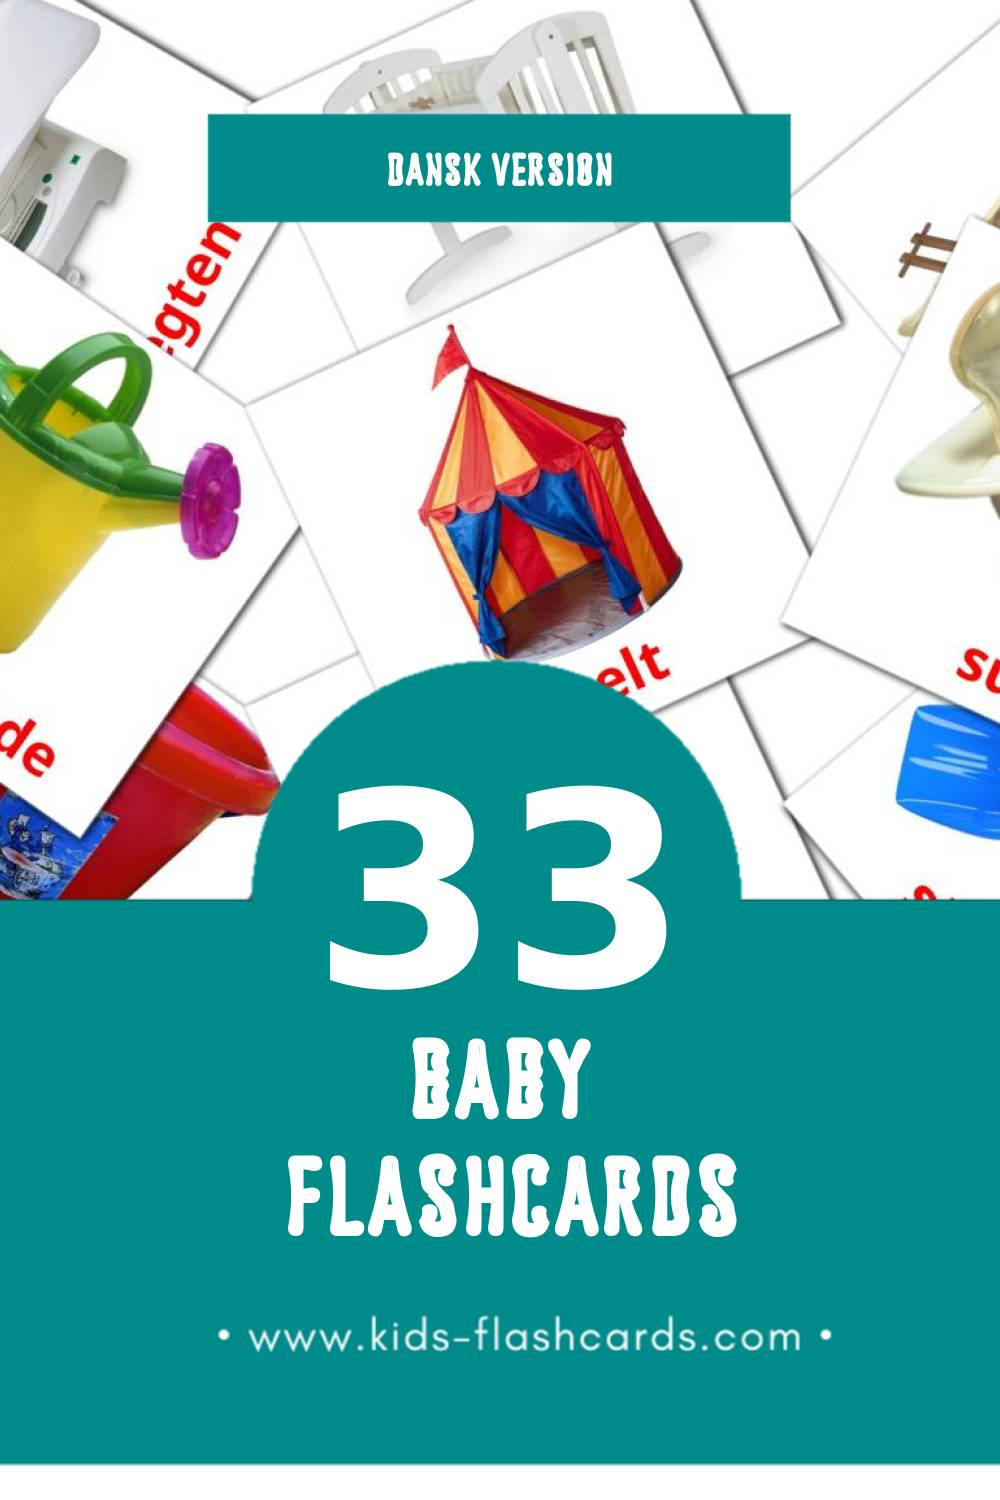 Visual Bbay Flashcards for Toddlers (33 cards in Dansk)